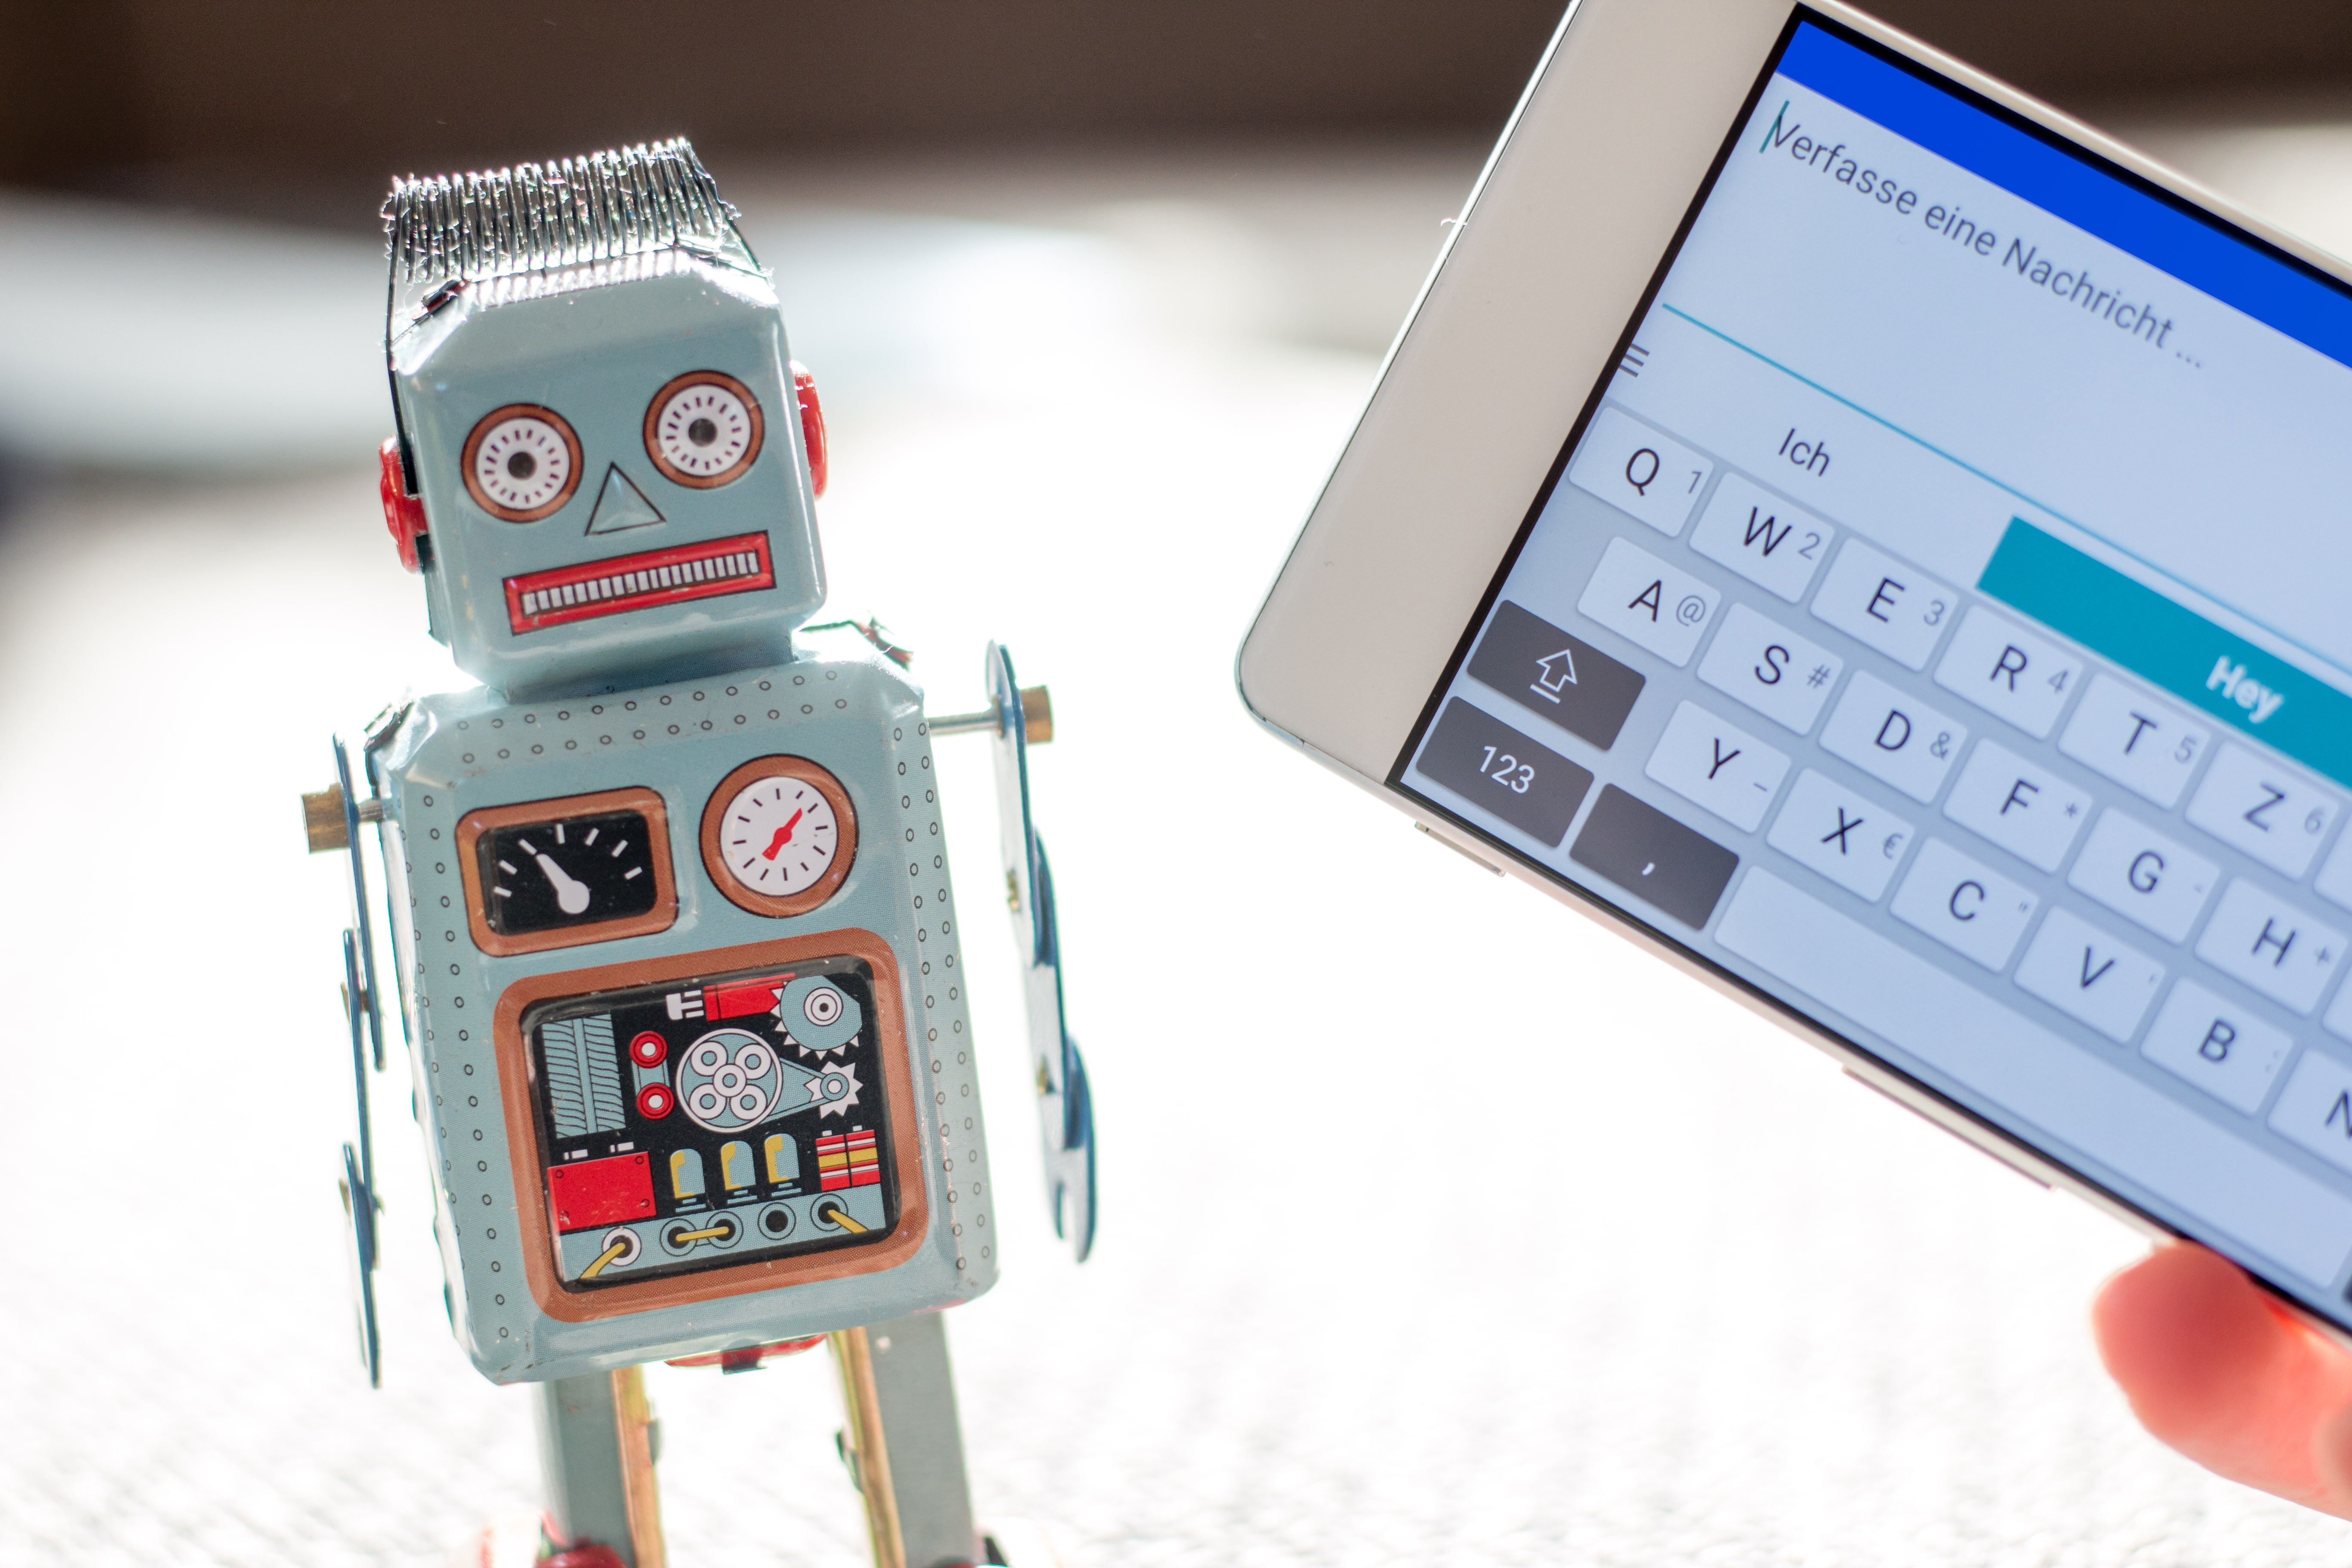 What do I need to know about building a chatbot?